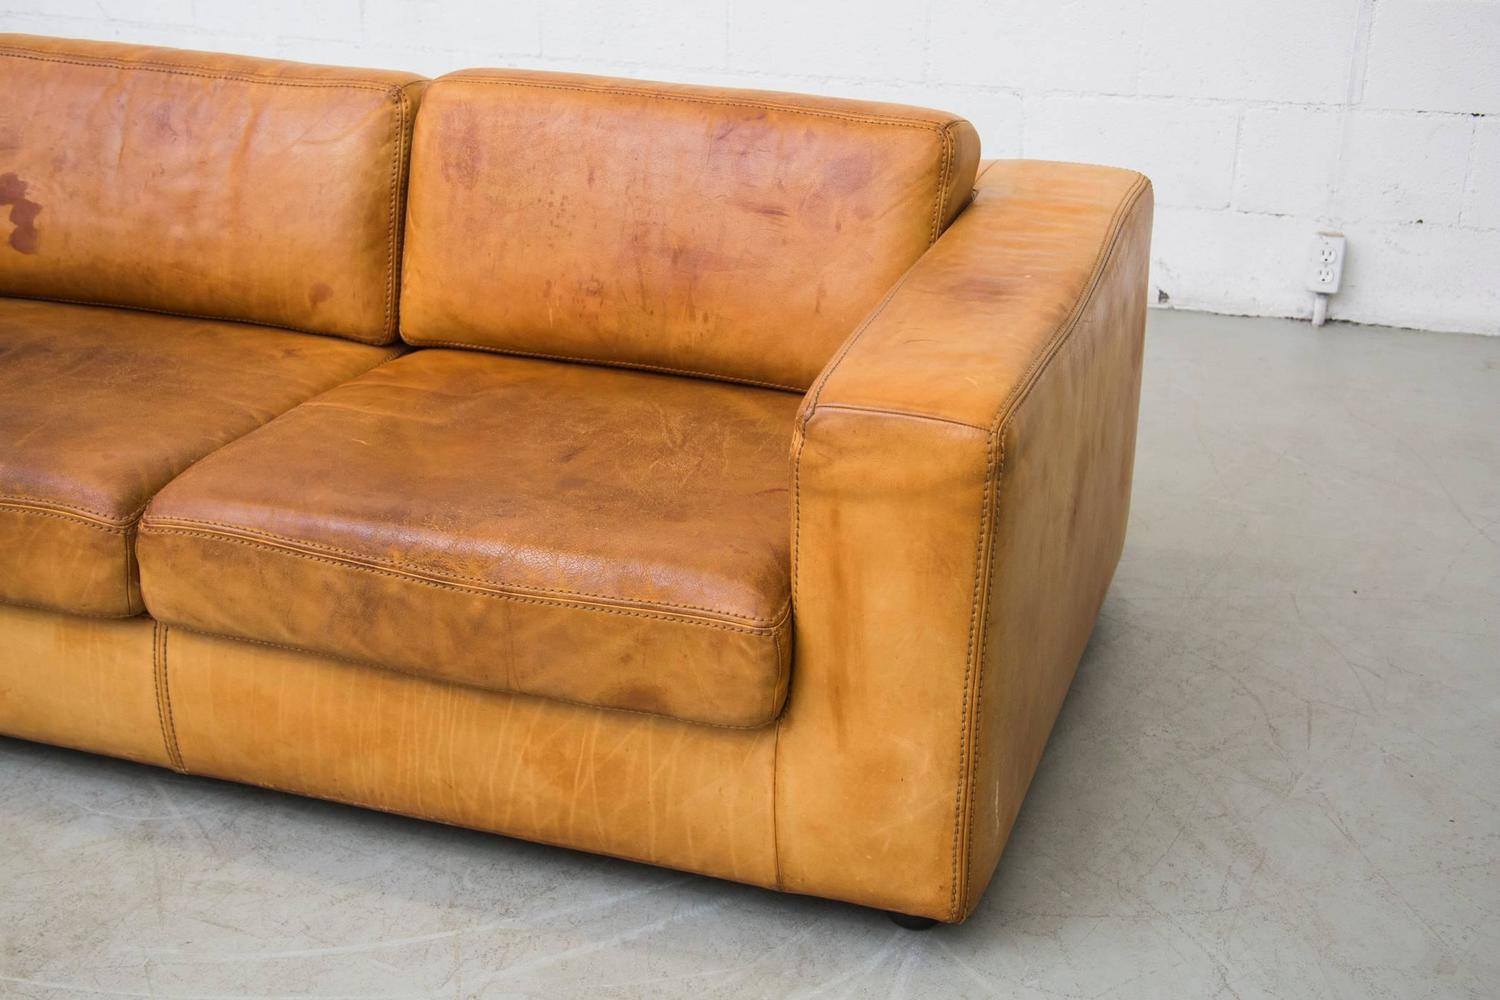 Natural Leather Two Cushion Sofa by Durlet at 1stdibs : C8A5359z from www.1stdibs.com size 1500 x 1000 jpeg 124kB